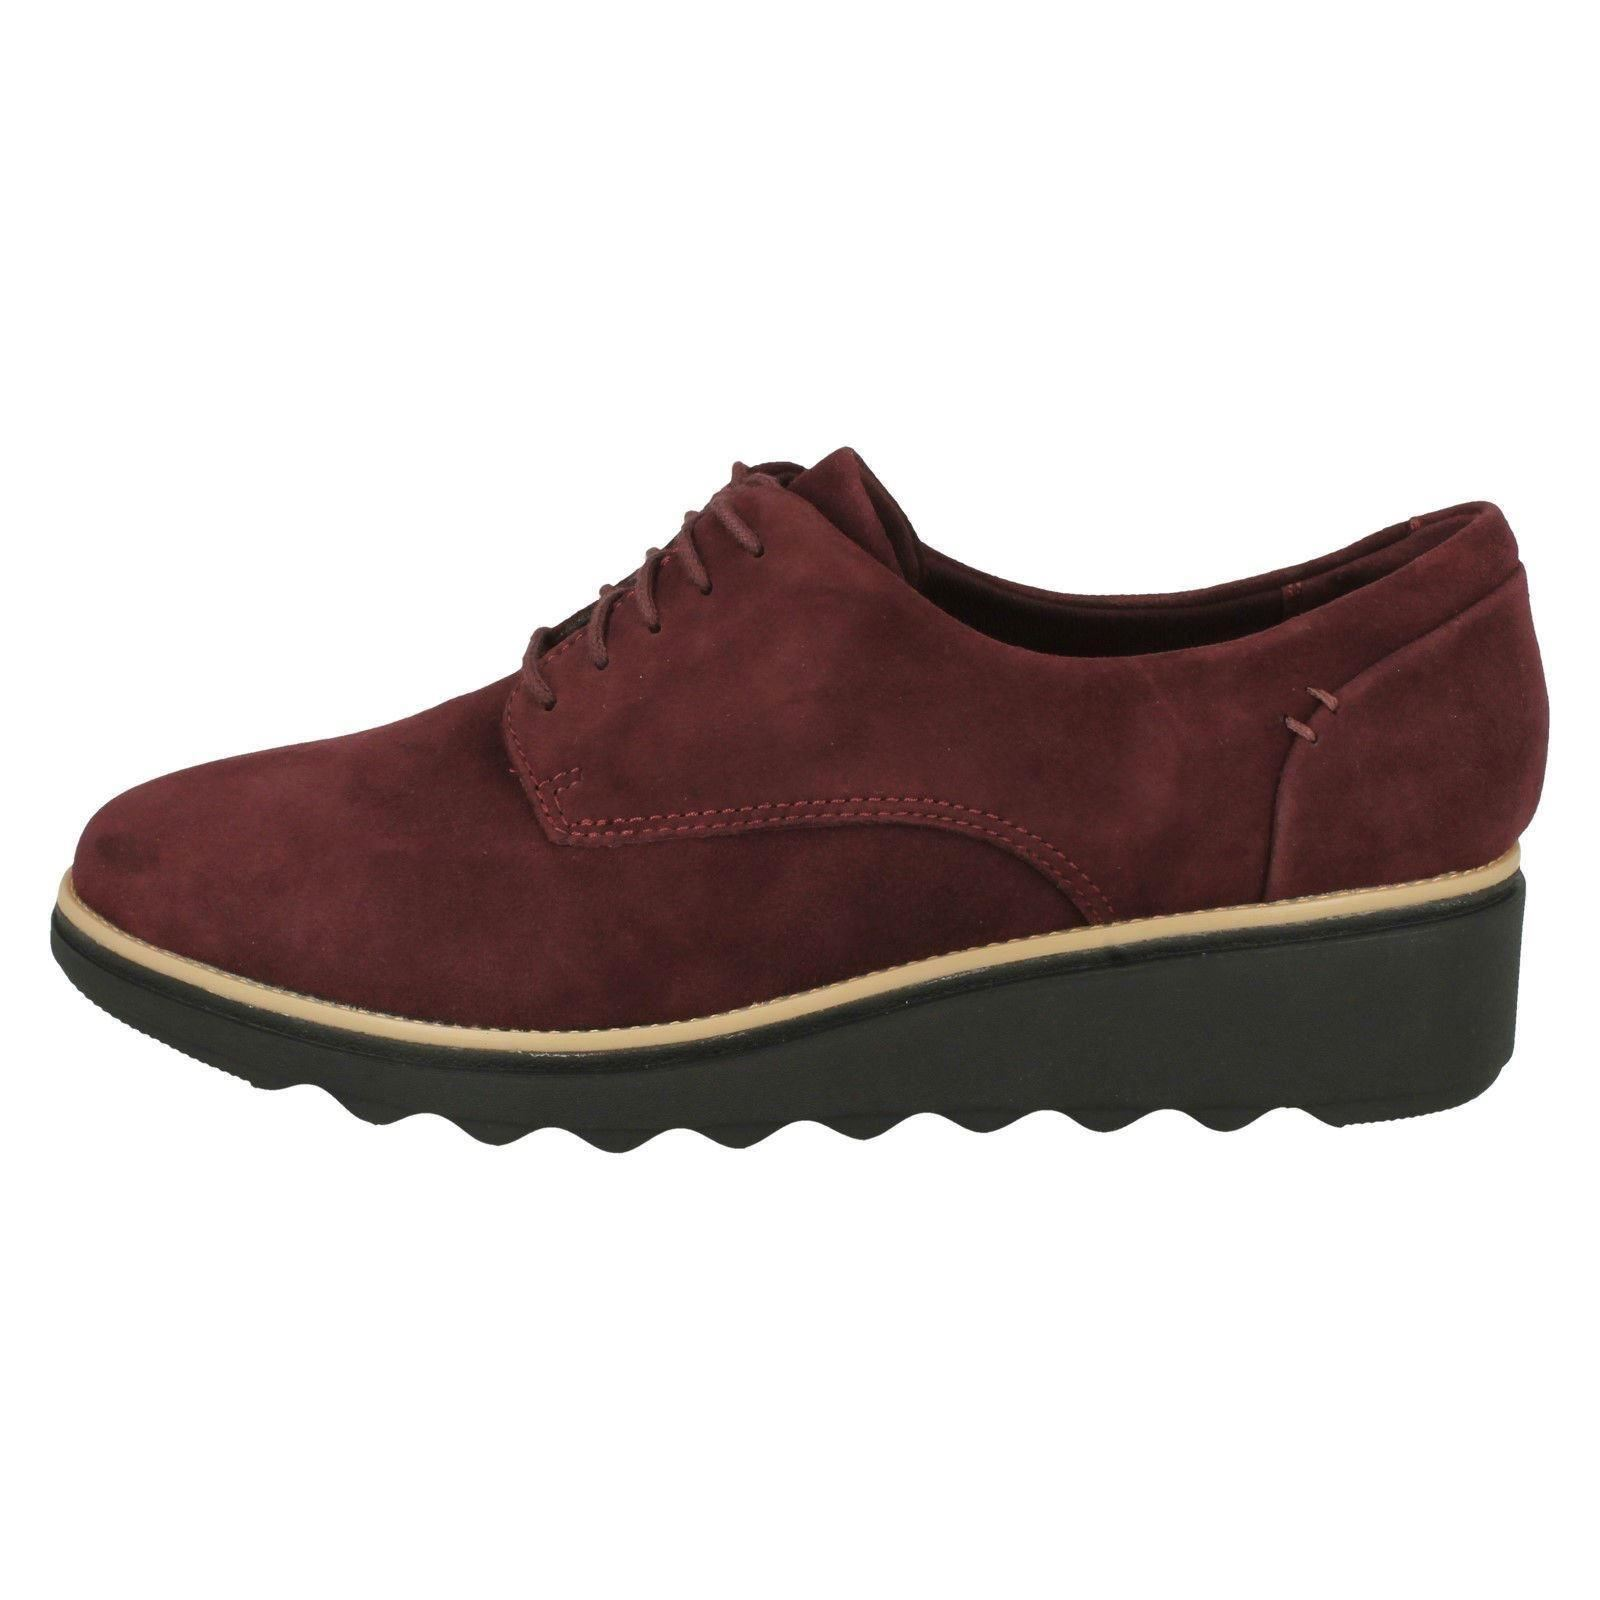 'Ladies Clarks' Smart Lace Up Up Up shoes - Sharon Noel 885a7d